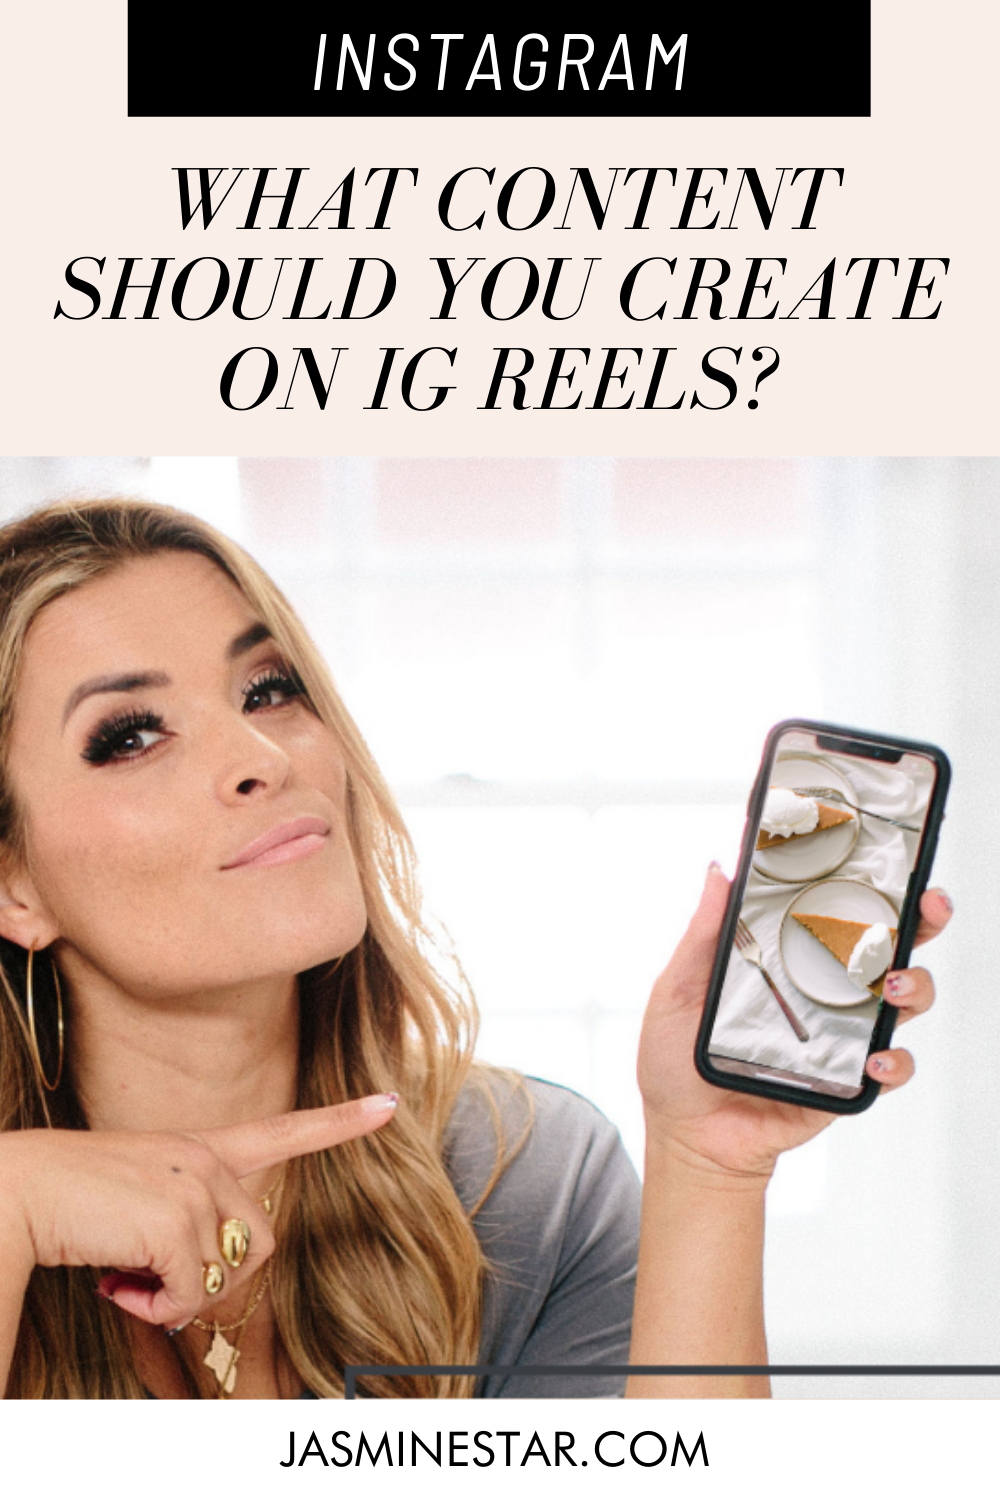 Grow Your Instagram Following With These Creative Video Ideas For Instagram Reels In 2021 Instagram Marketing Instagram Marketing Strategy Instagram Business